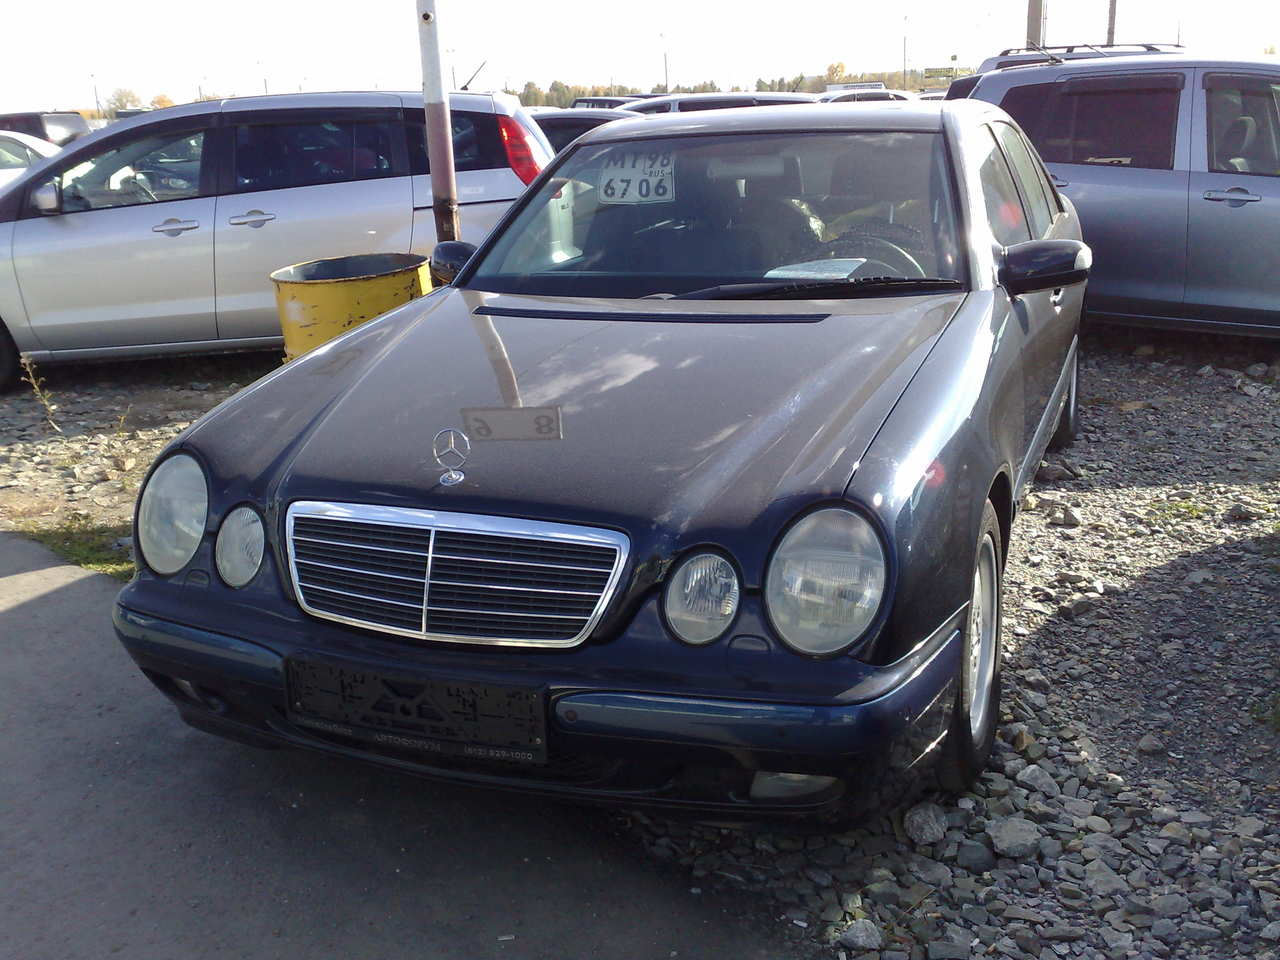 2001 mercedes benz e class photos 2 8 gasoline fr or rr for 2001 mercedes benz e320 for sale